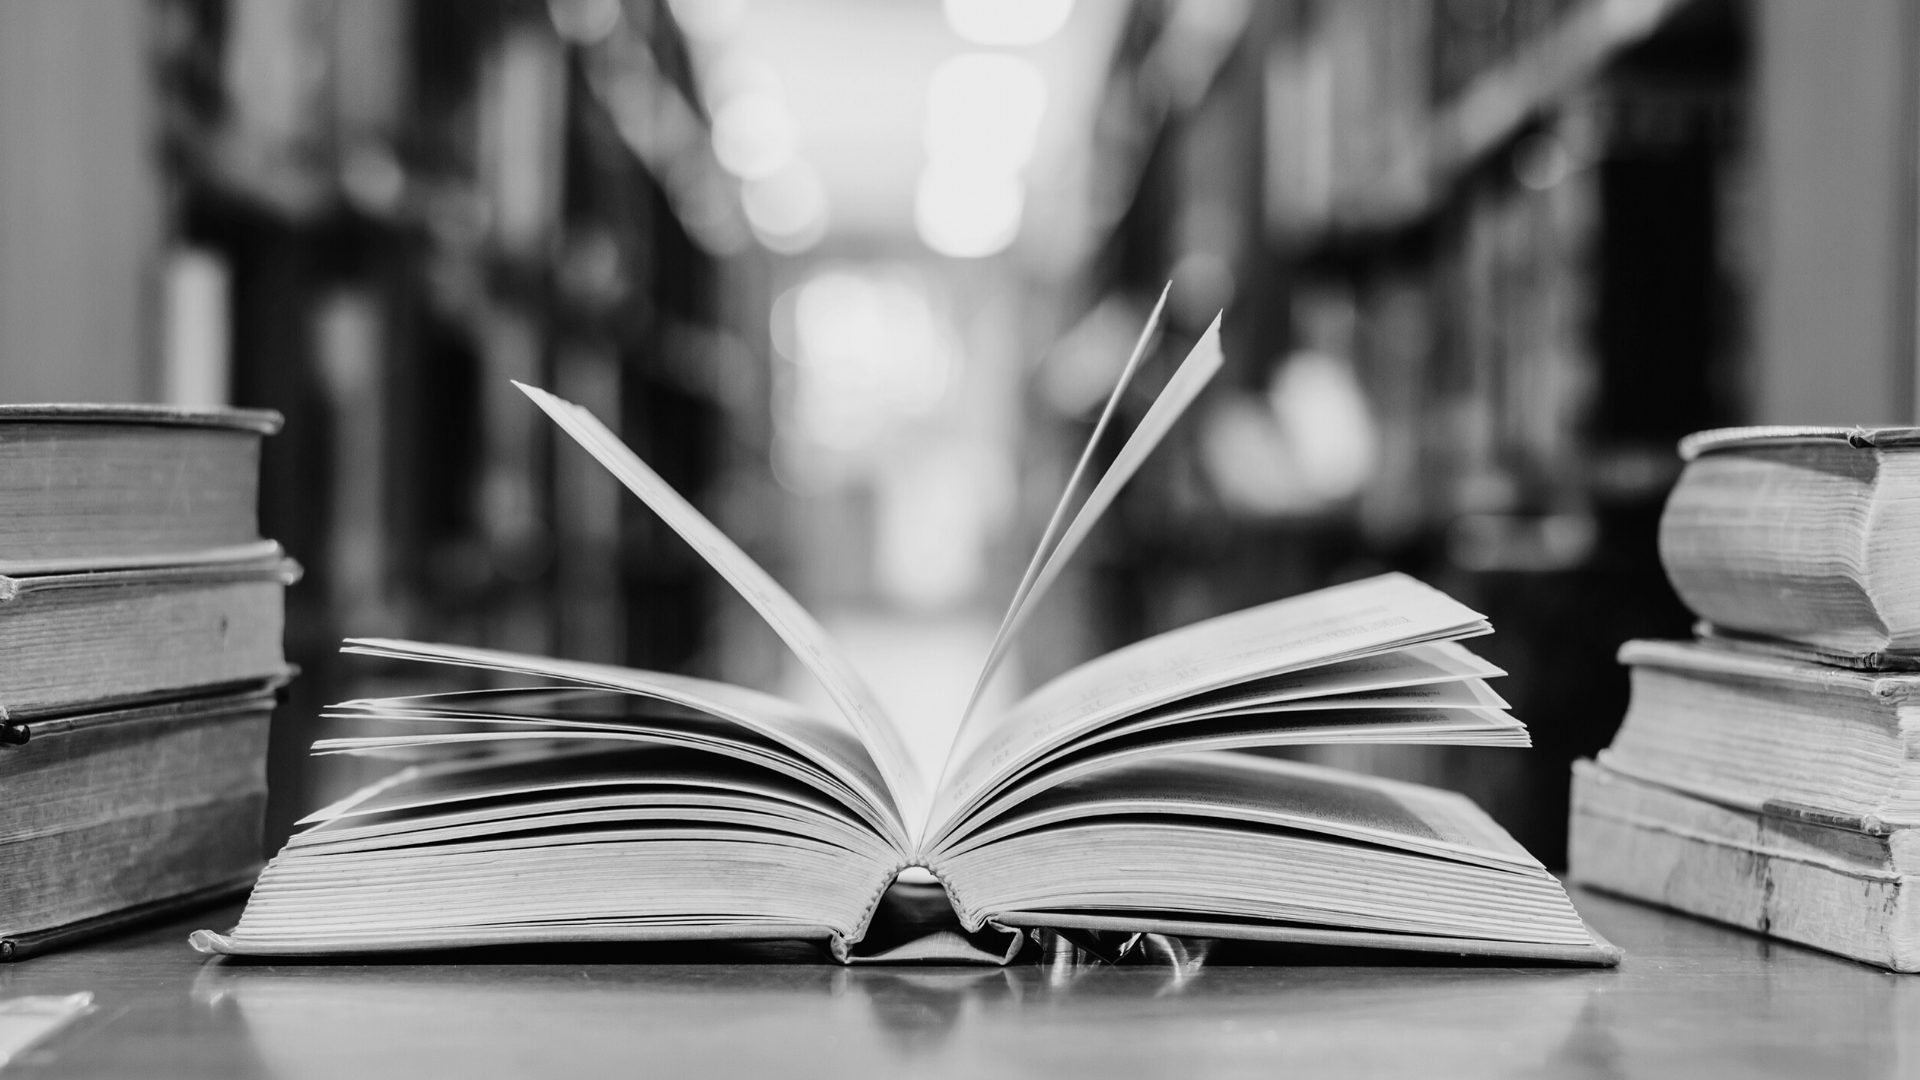 The national library and Dilia will allow online book access to university students